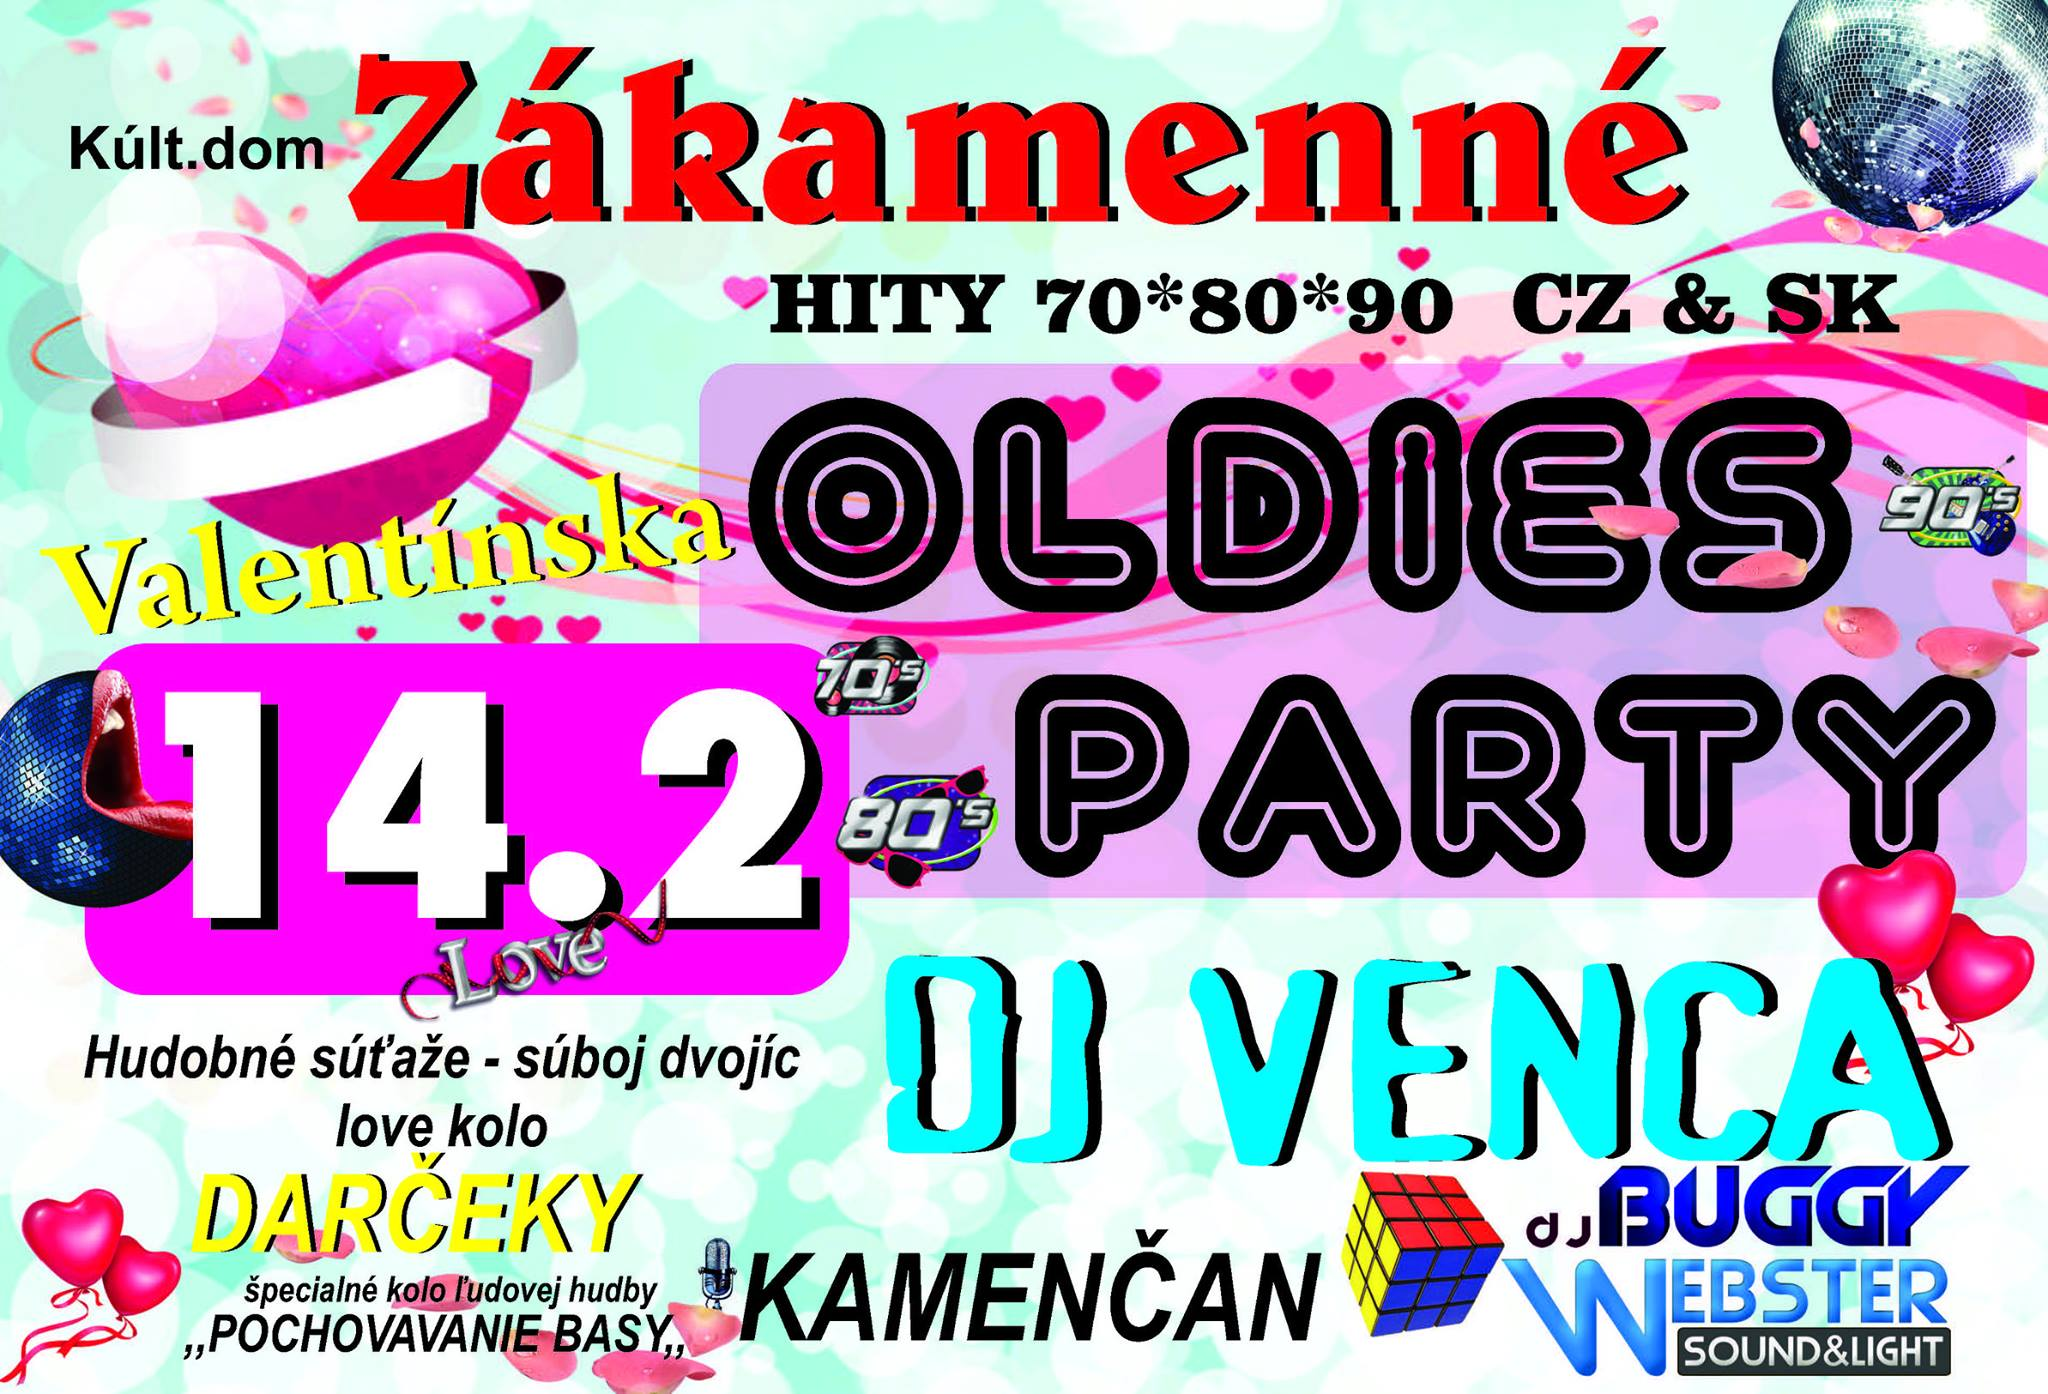 Oldies party Zákamenné